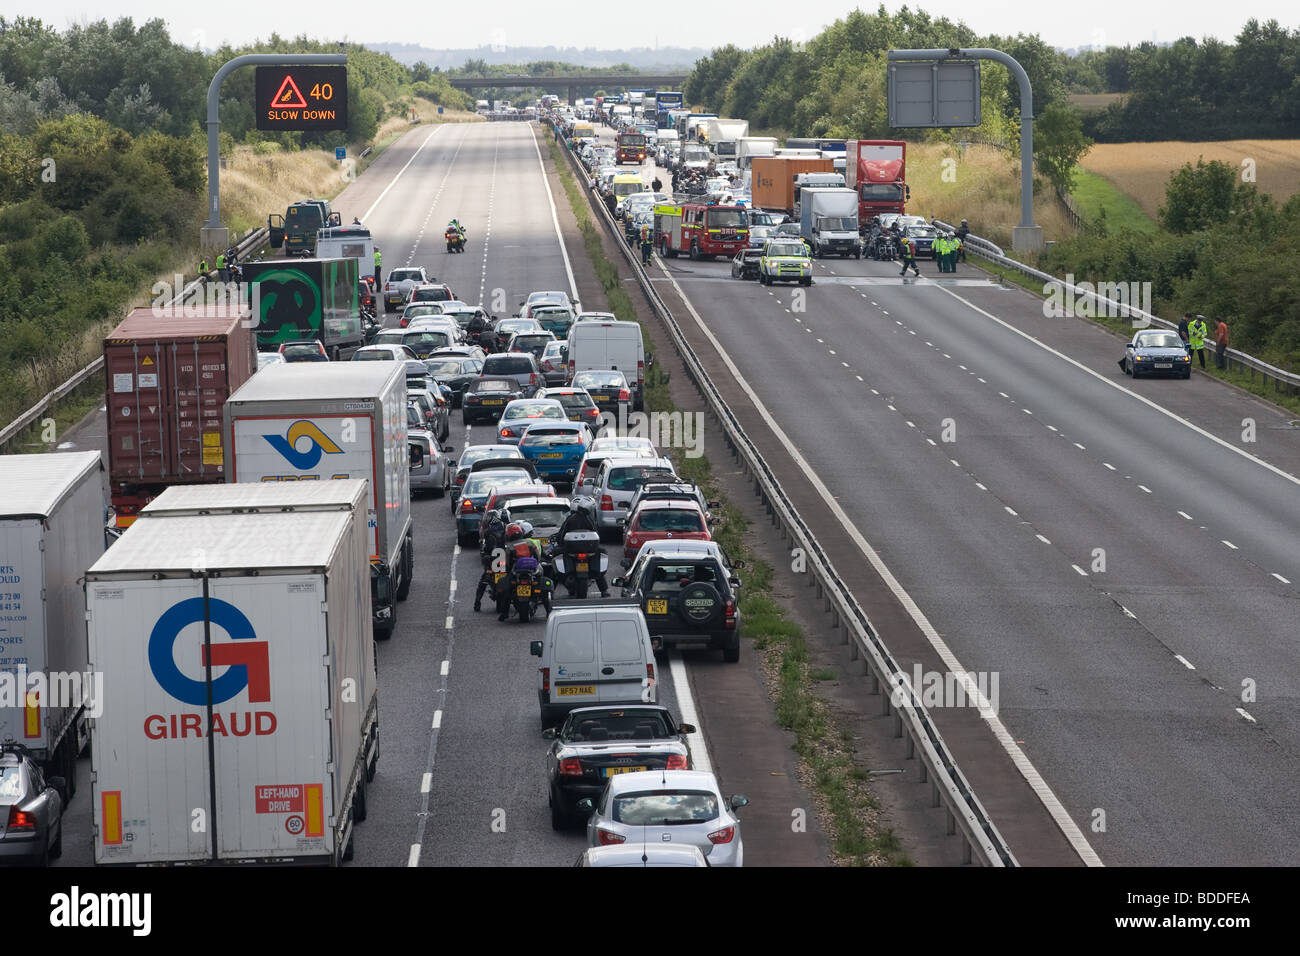 Road Traffic Accident On The M40 Stock Photo: 25498434 - Alamy